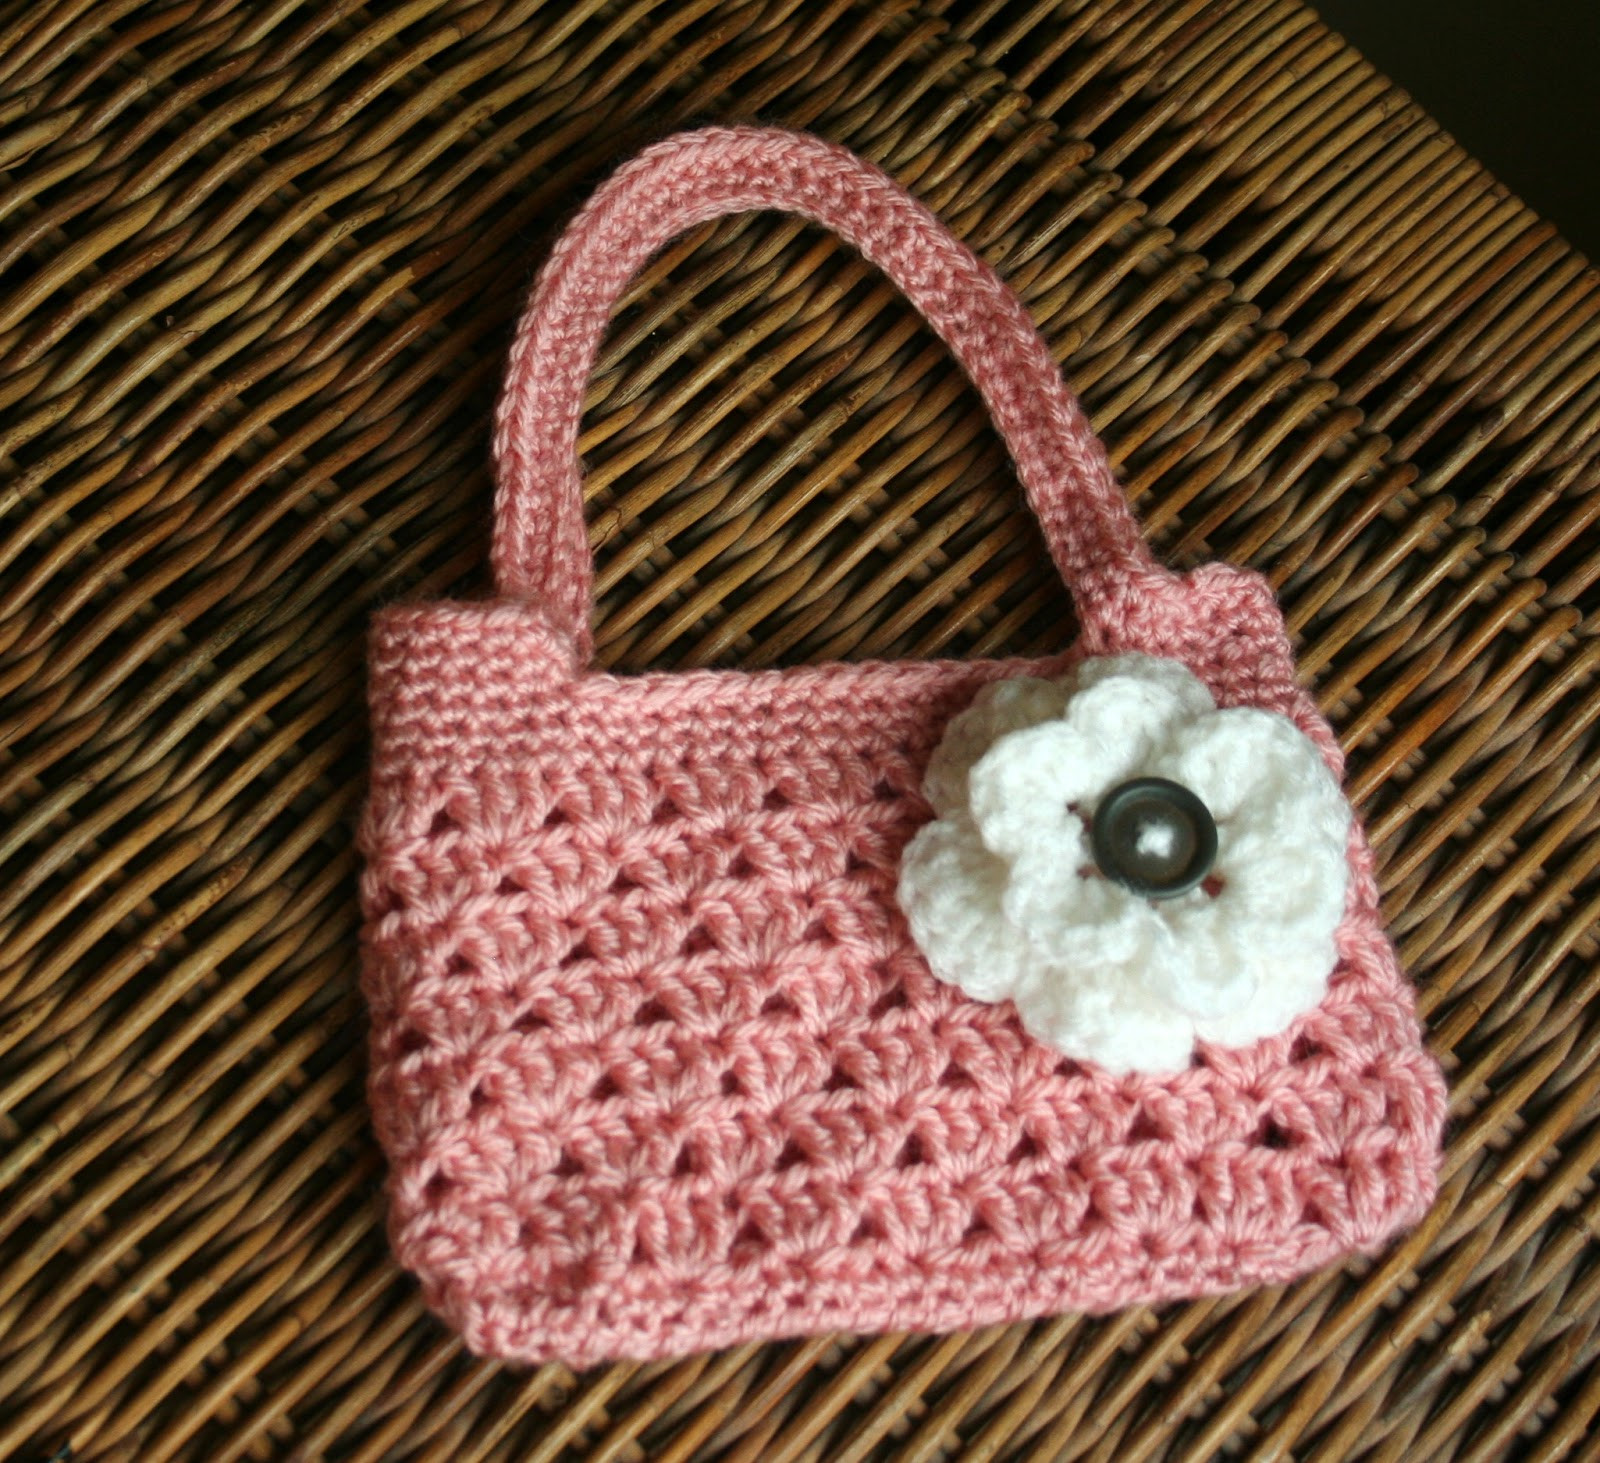 Free Crochet Bag Patterns Unique Tampa Bay Crochet Free Easy Crochet Purse Pattern Of Awesome 45 Ideas Free Crochet Bag Patterns